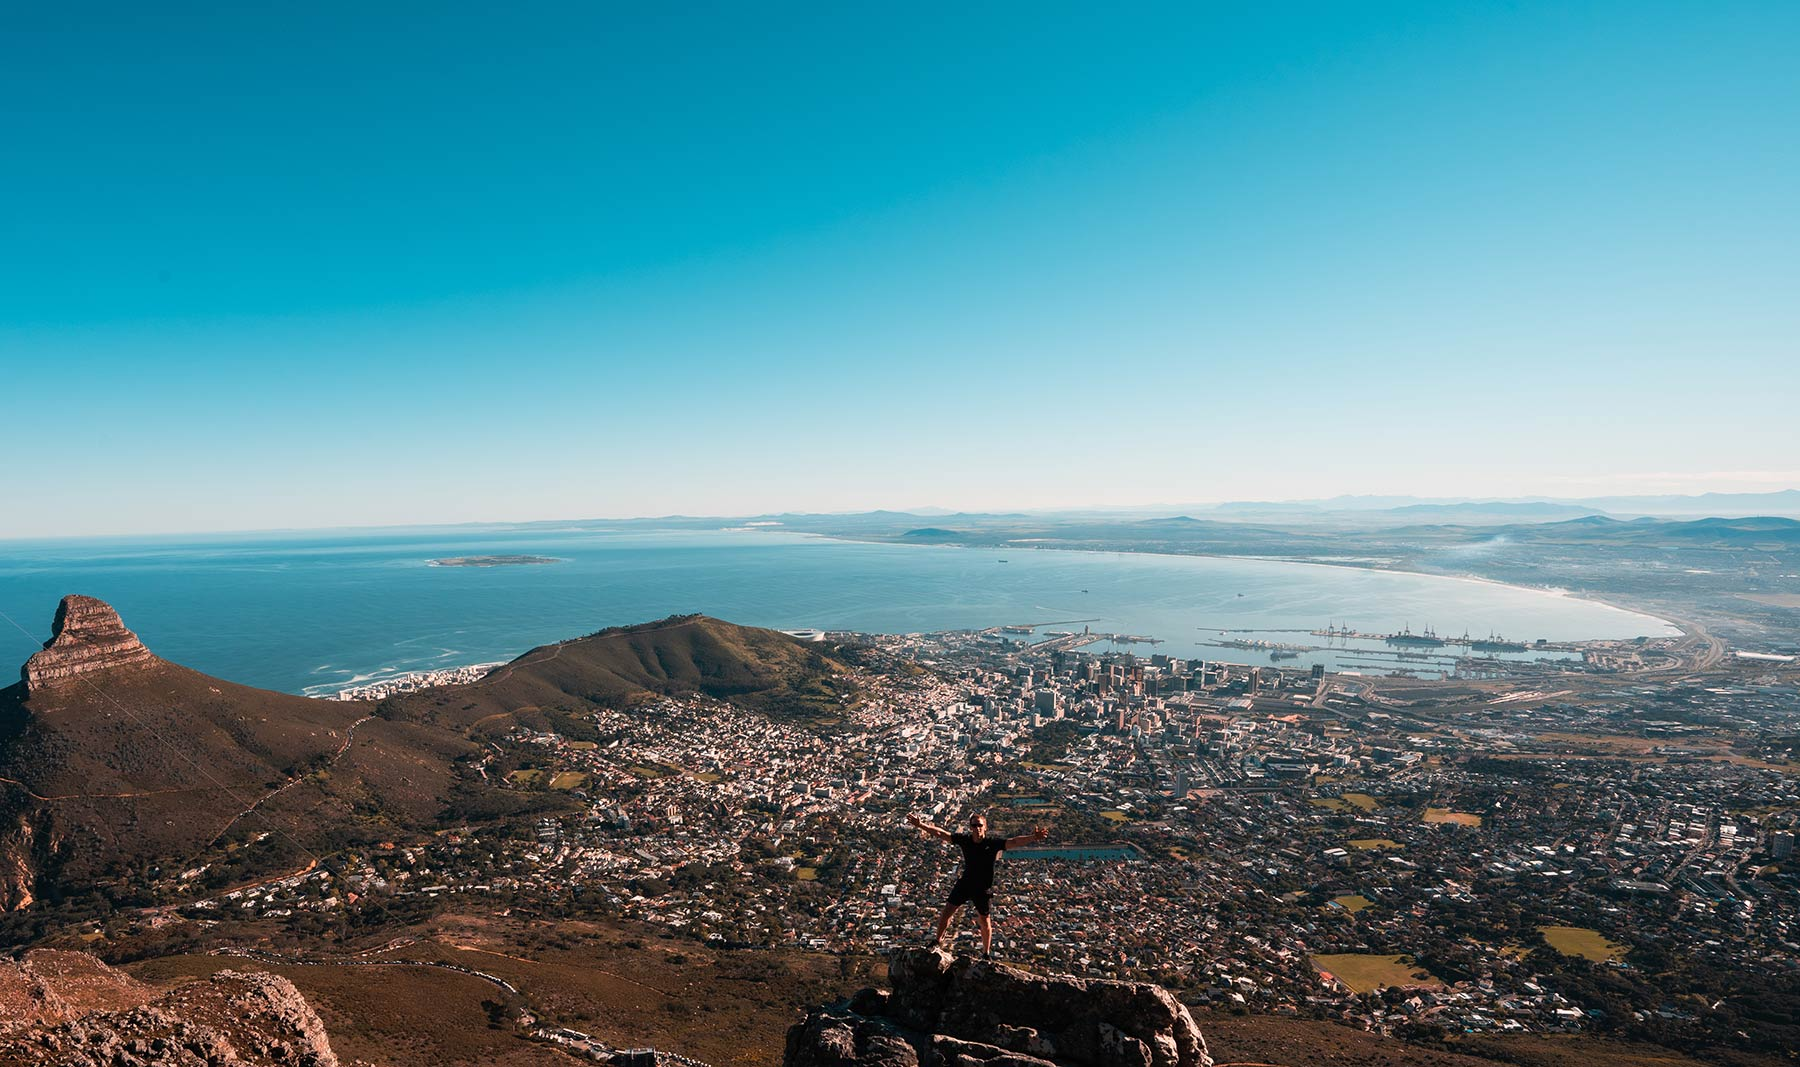 David Simpson on top of Table Mountain in Cape Town, South Africa. Hiking Table Mountain